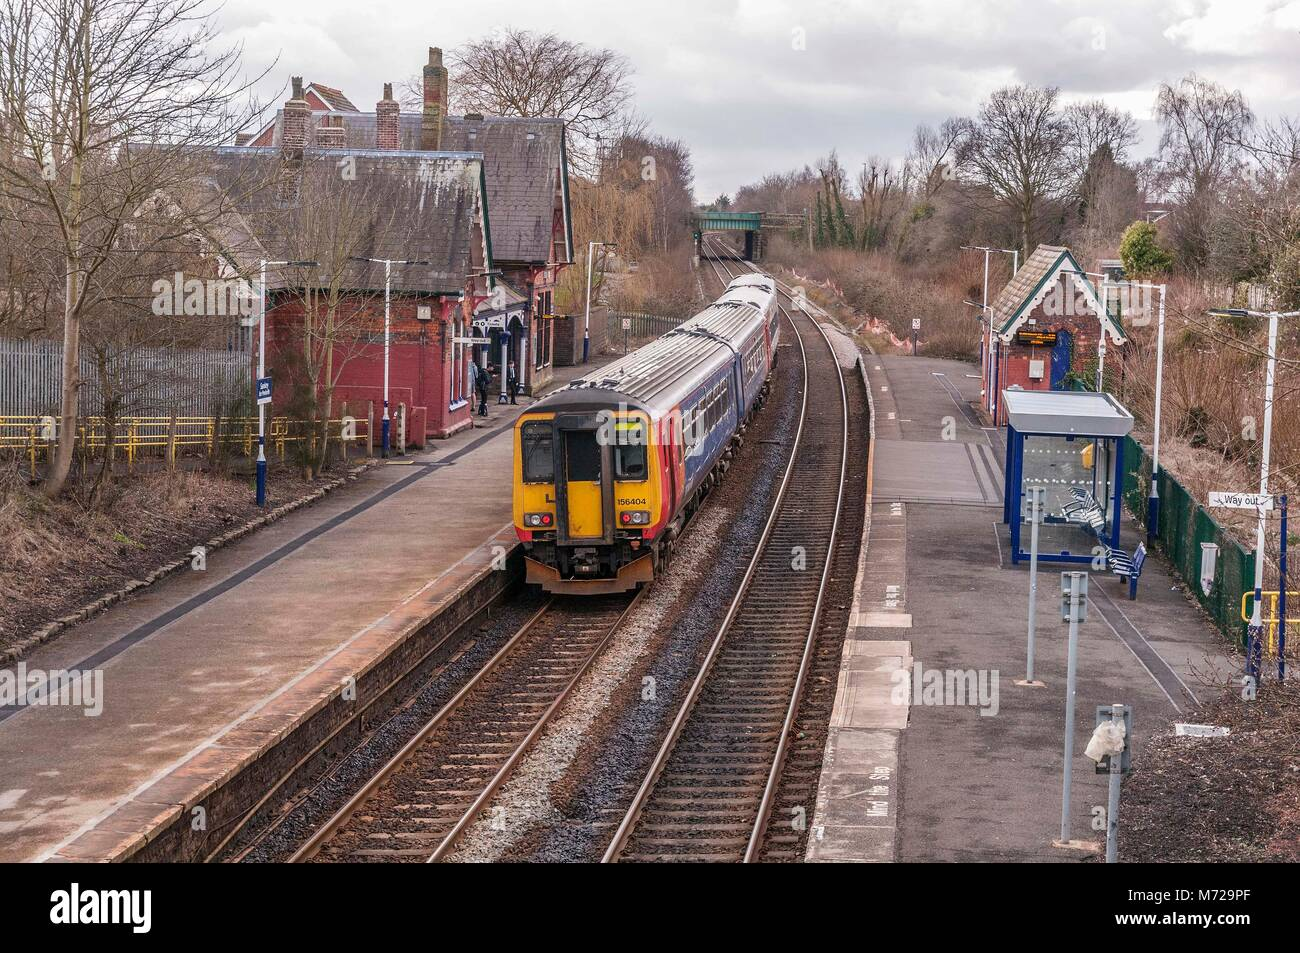 A Class 156 diesel multiple unit train passing through the rural station at Sankey in Cheshire. East Midlands Trains - Stock Image